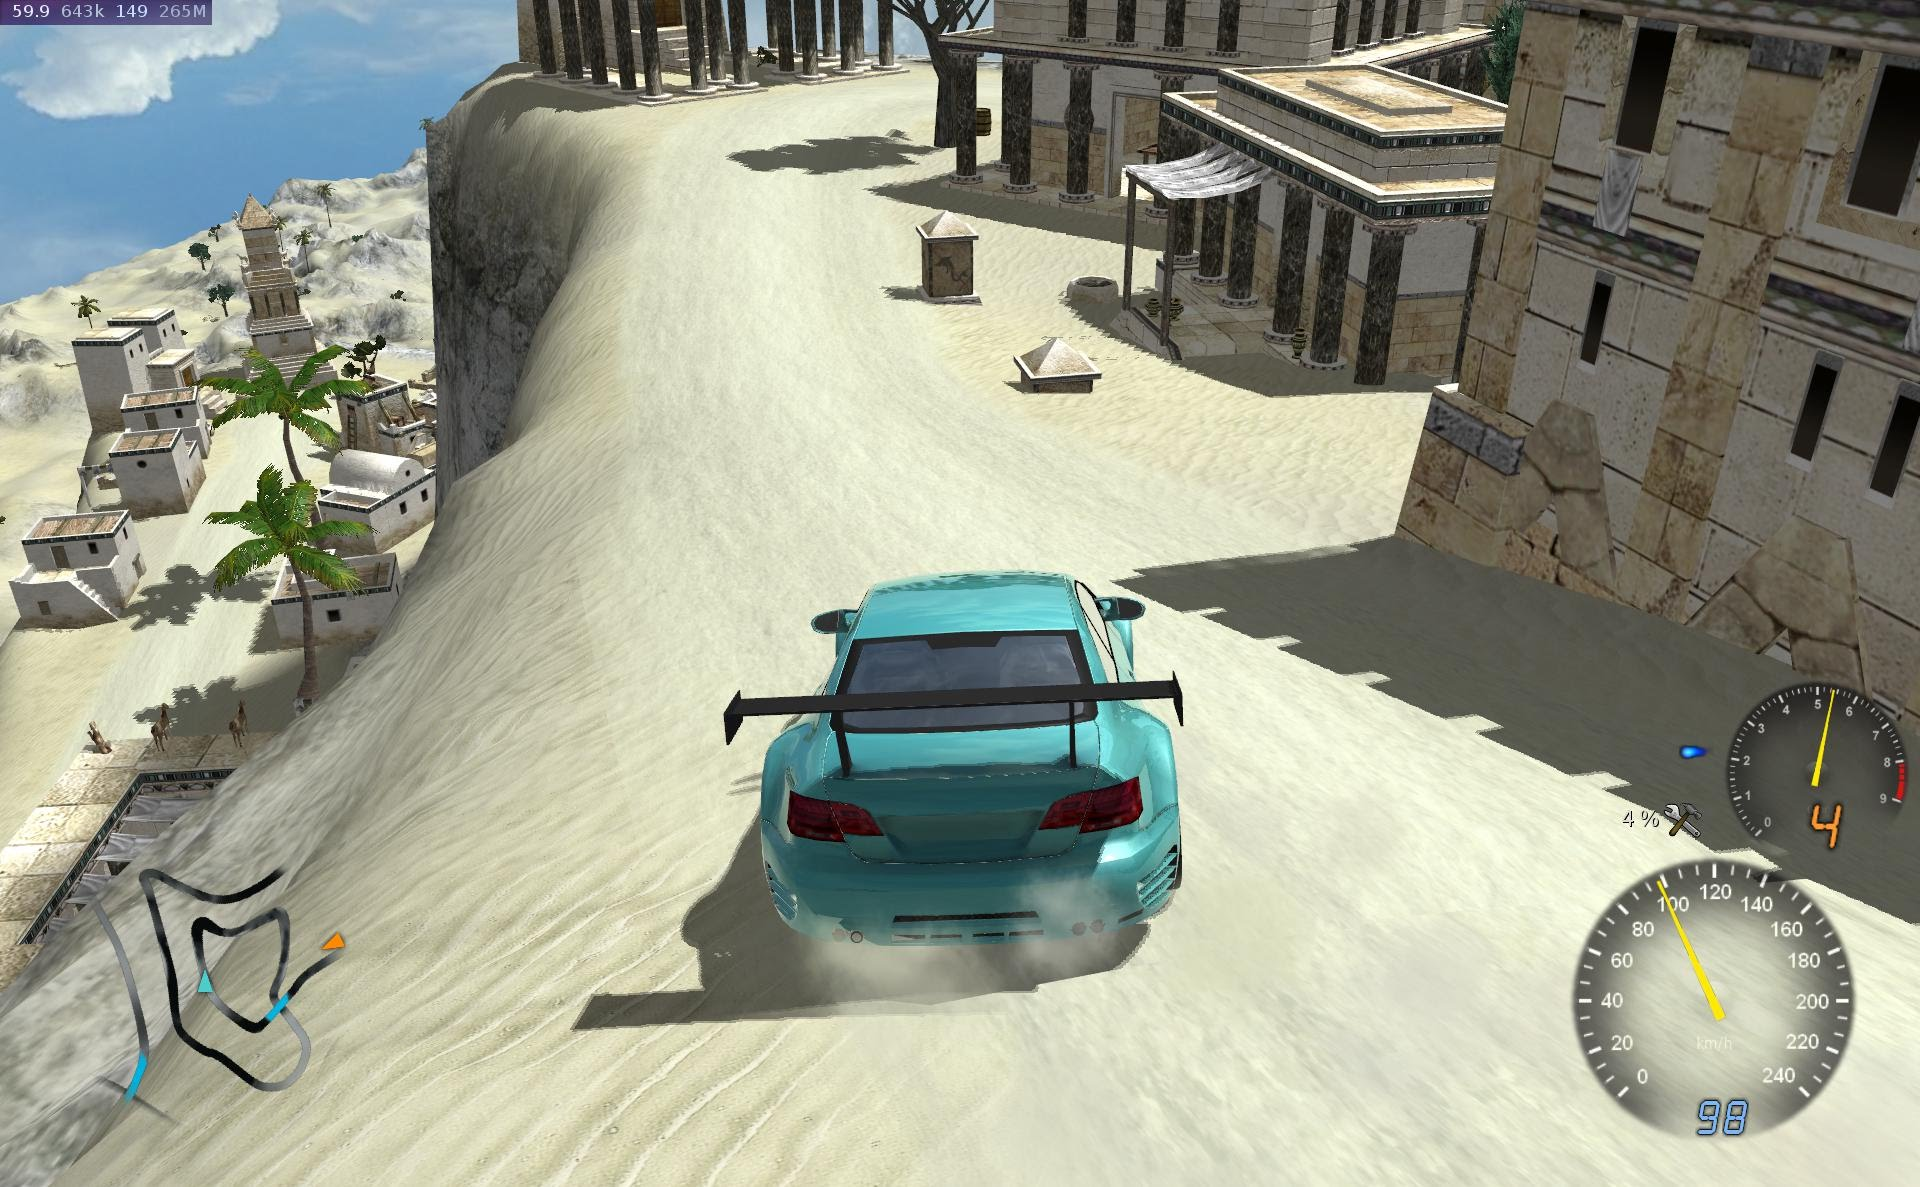 The 15 Best Free Racing Games to Play In 2017 | GAMERS DECIDE